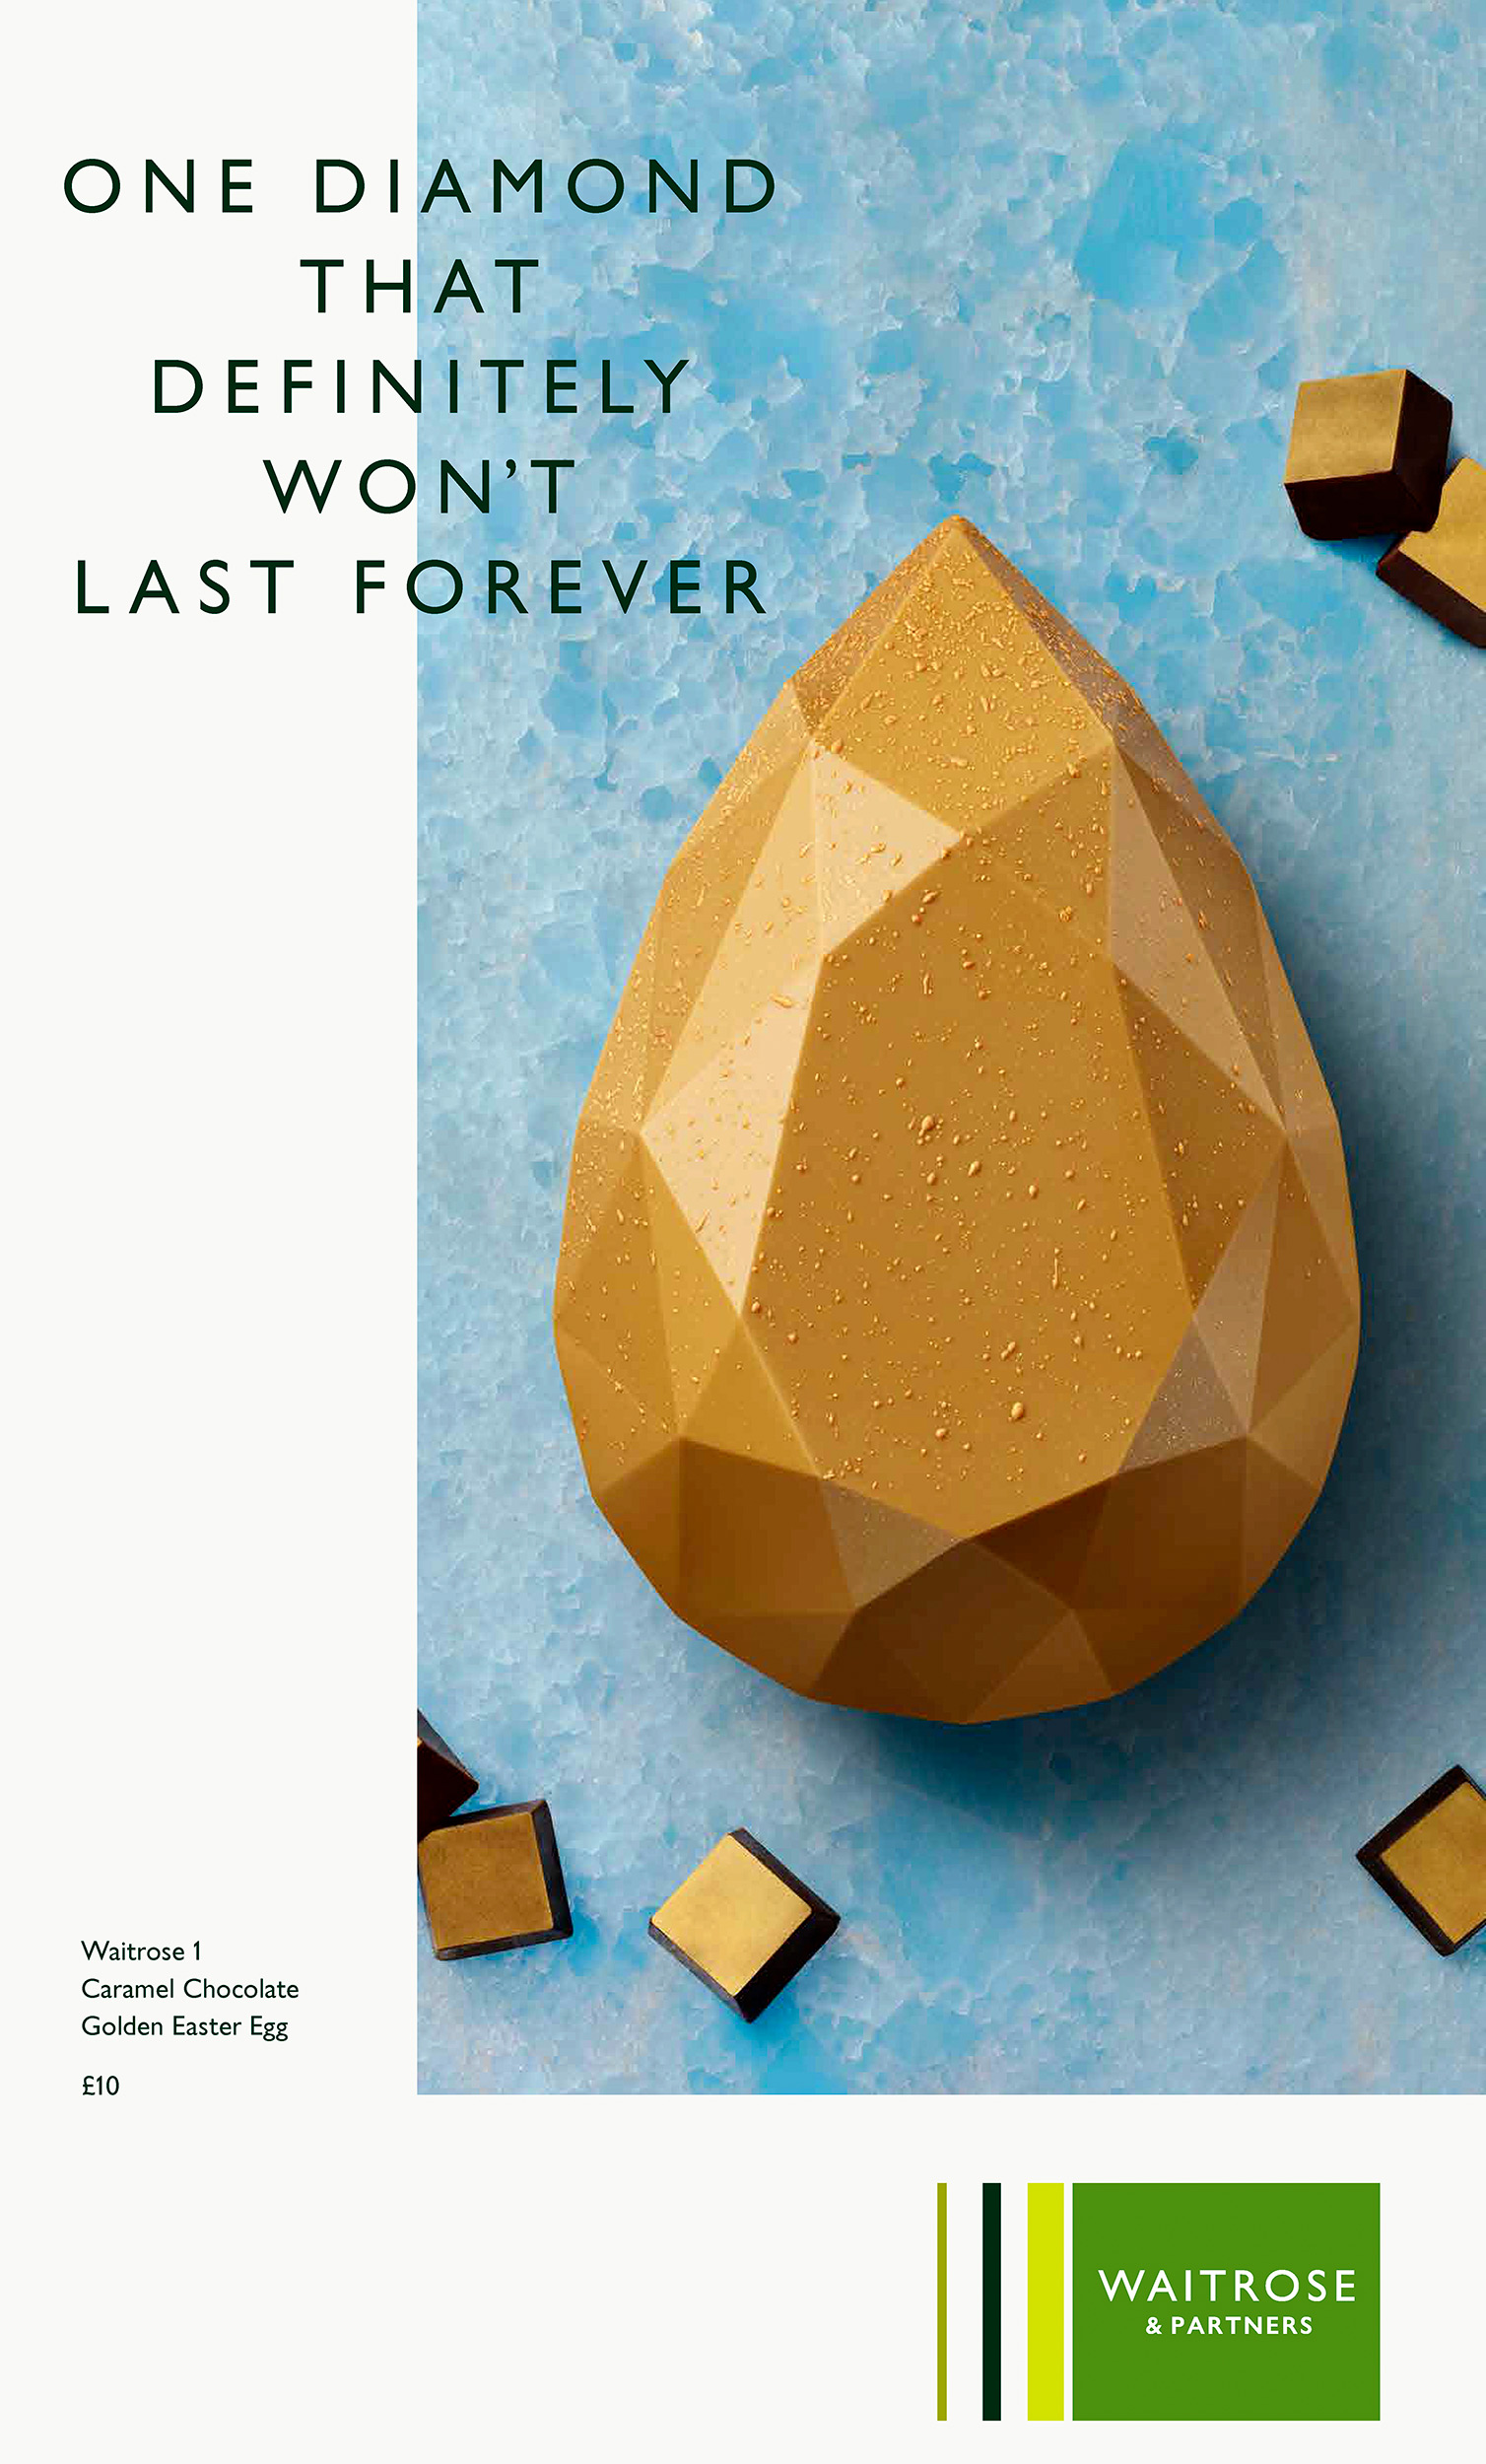 Waitrose-Diamond-Egg